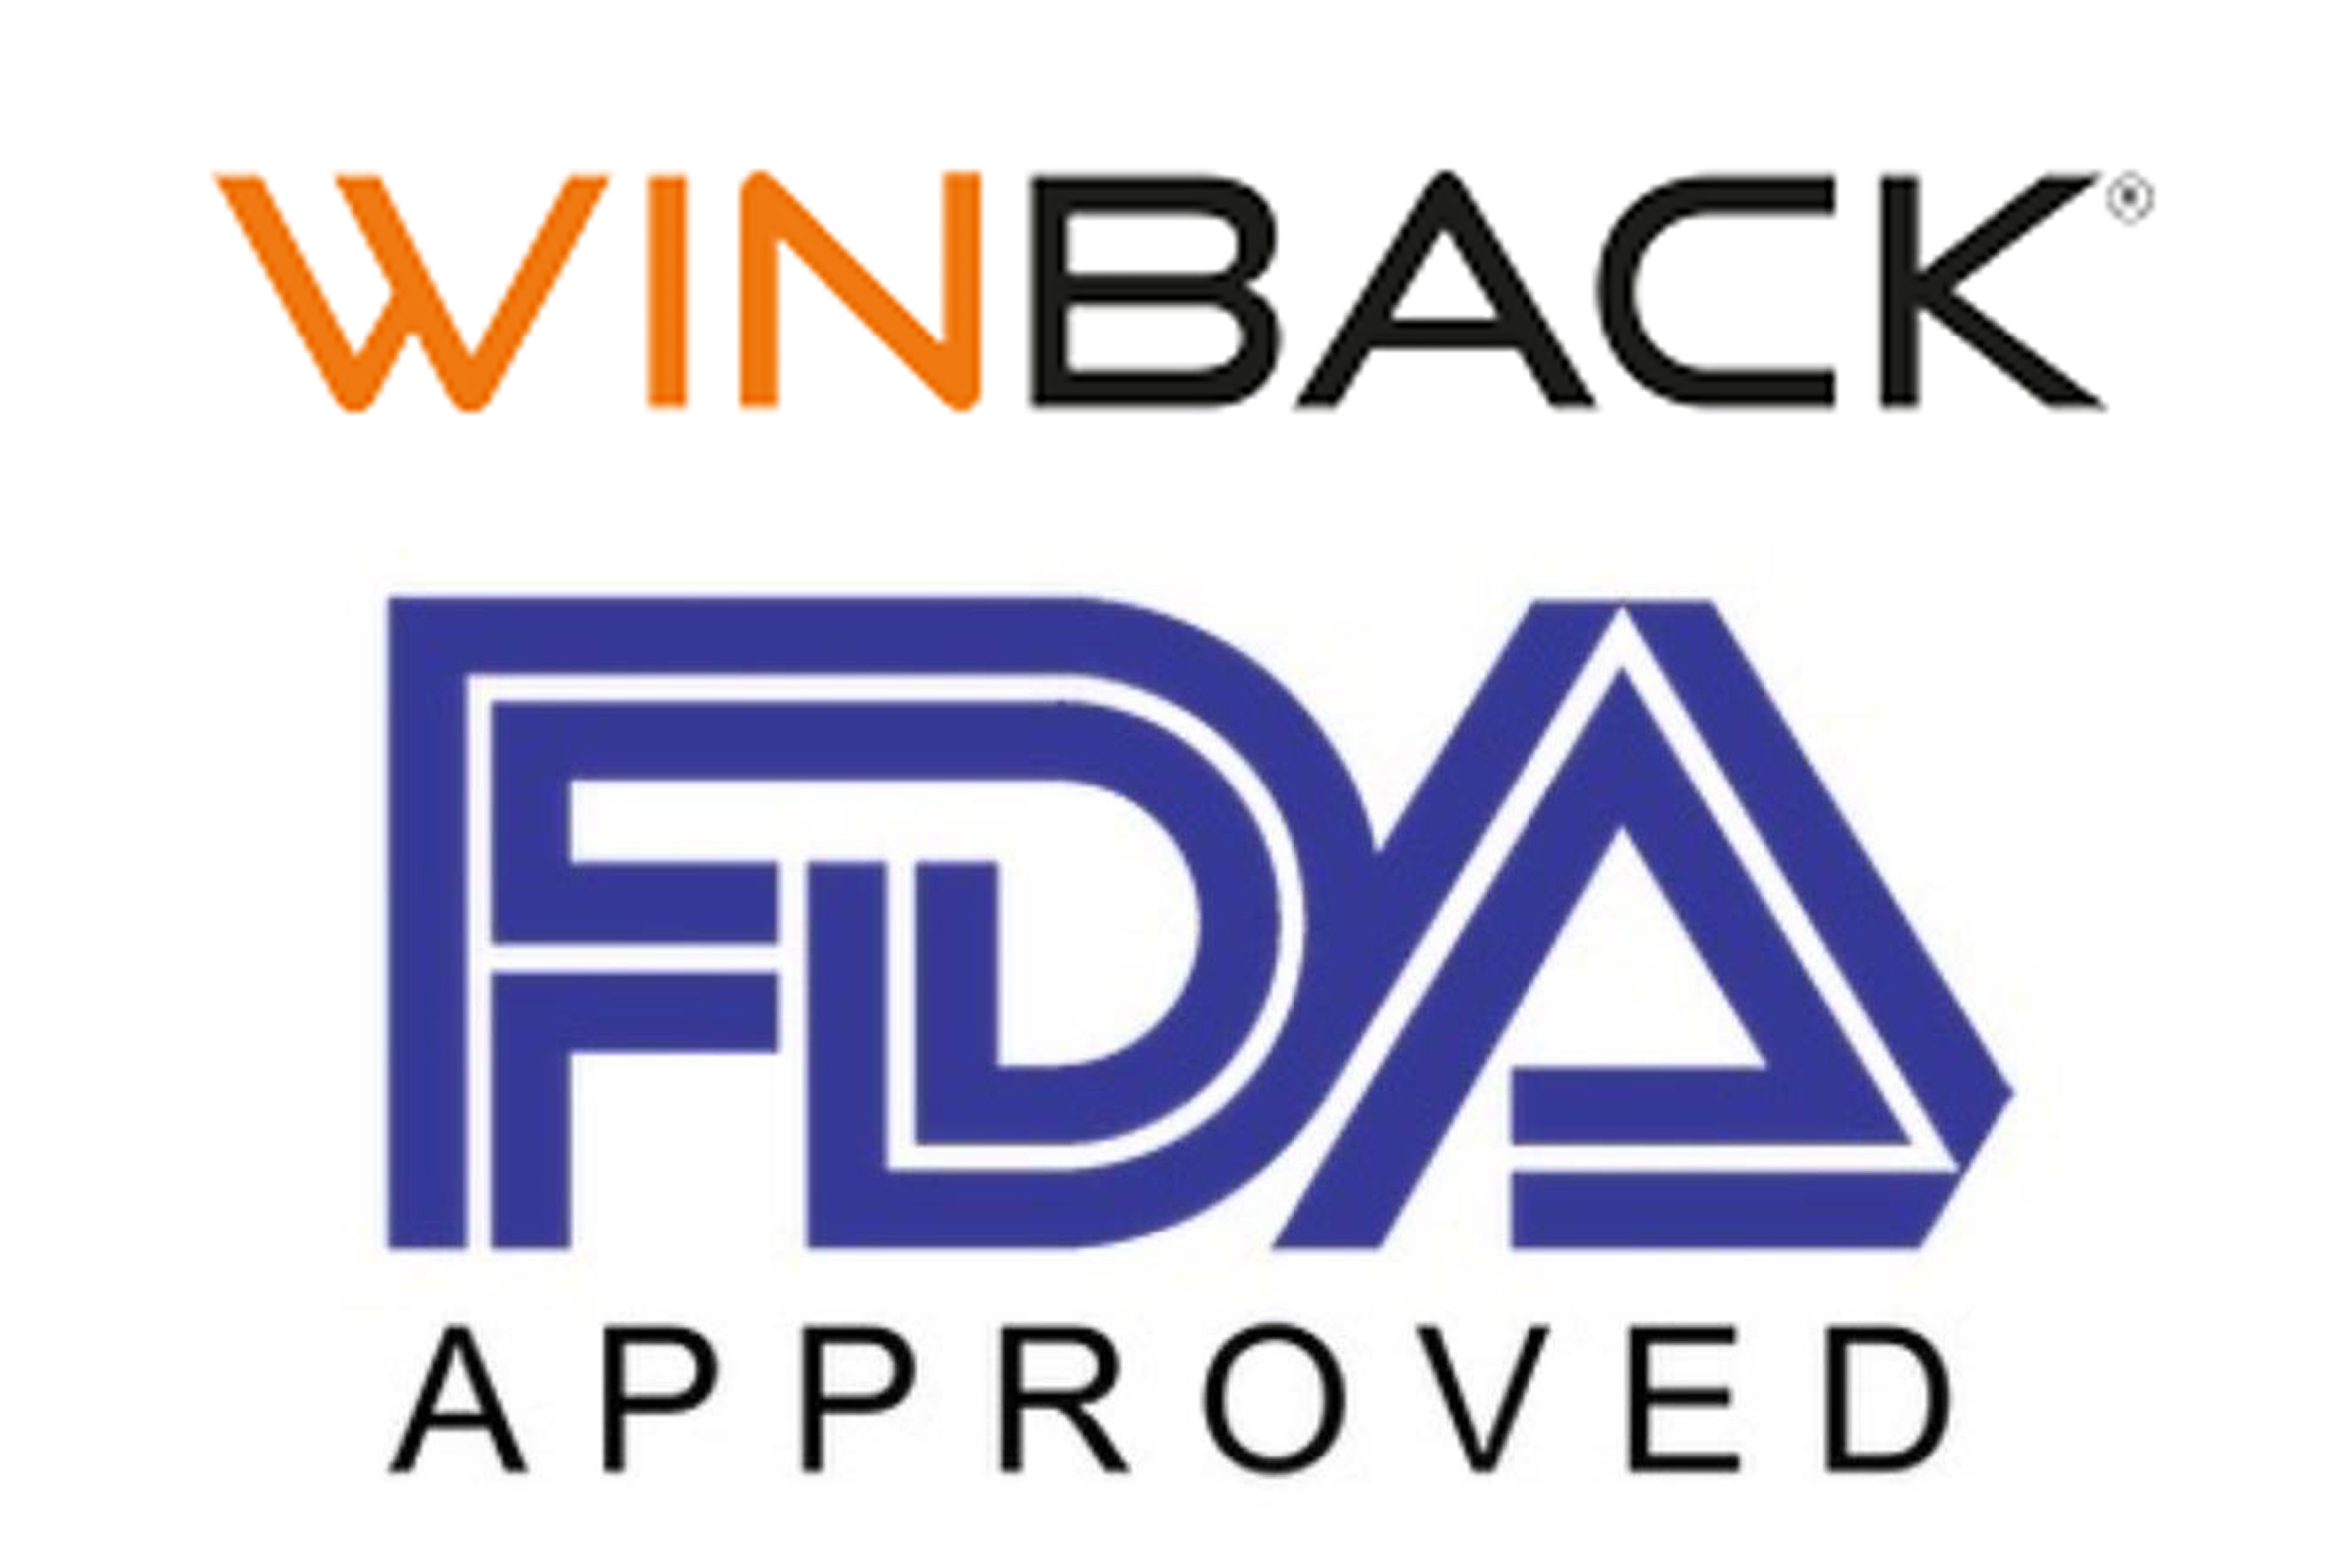 Winback Medical obtains successfully its FDA approval